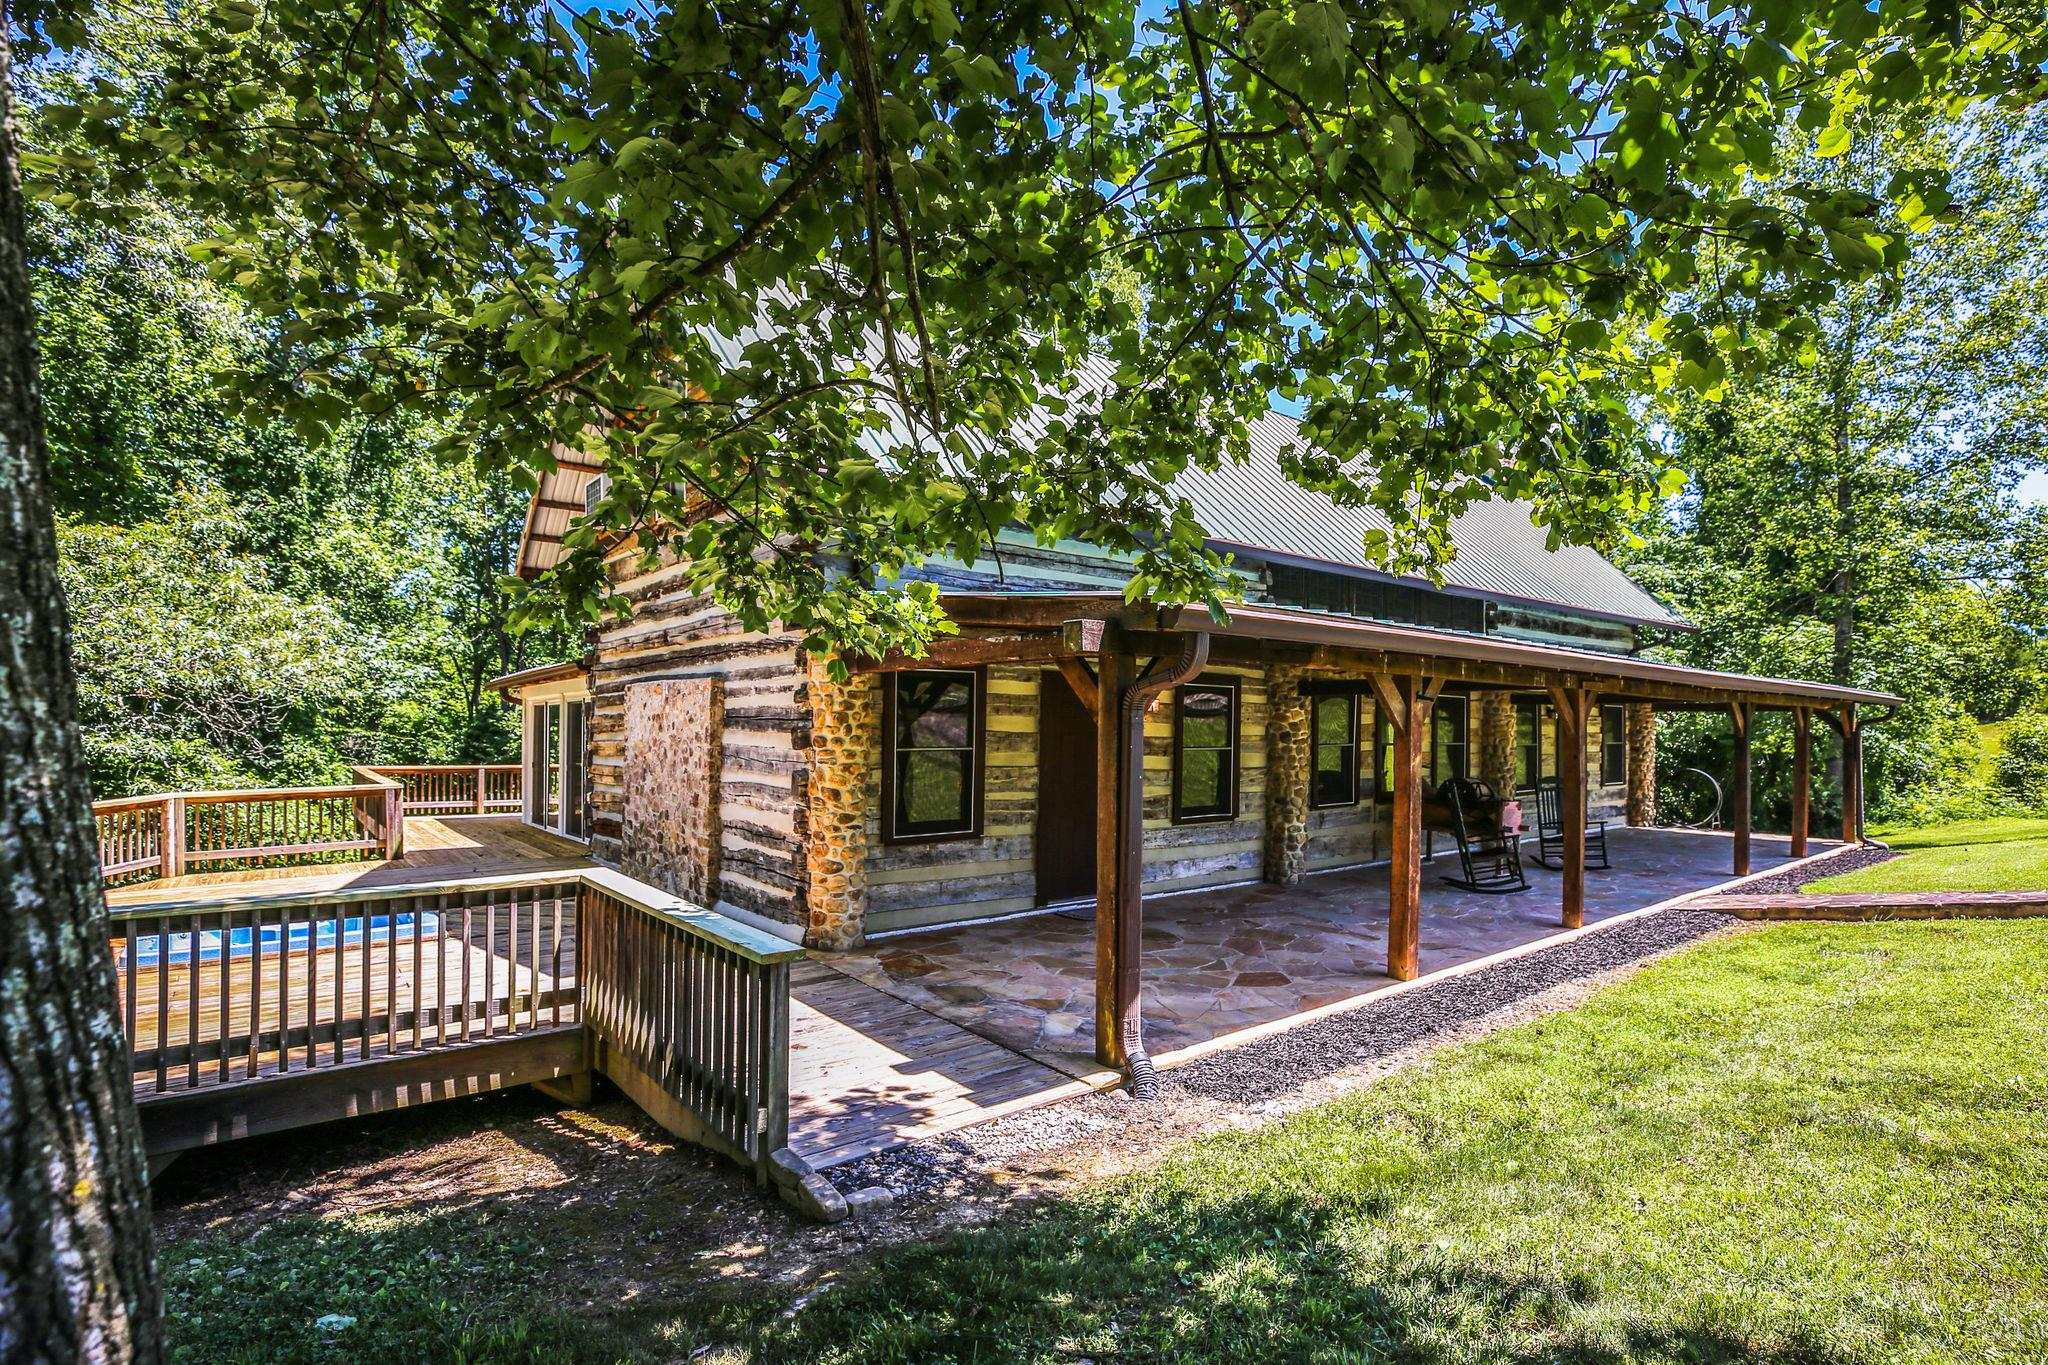 12159 Cookeville Boatdock Rd, Baxter, TN 38544 - Baxter, TN real estate listing